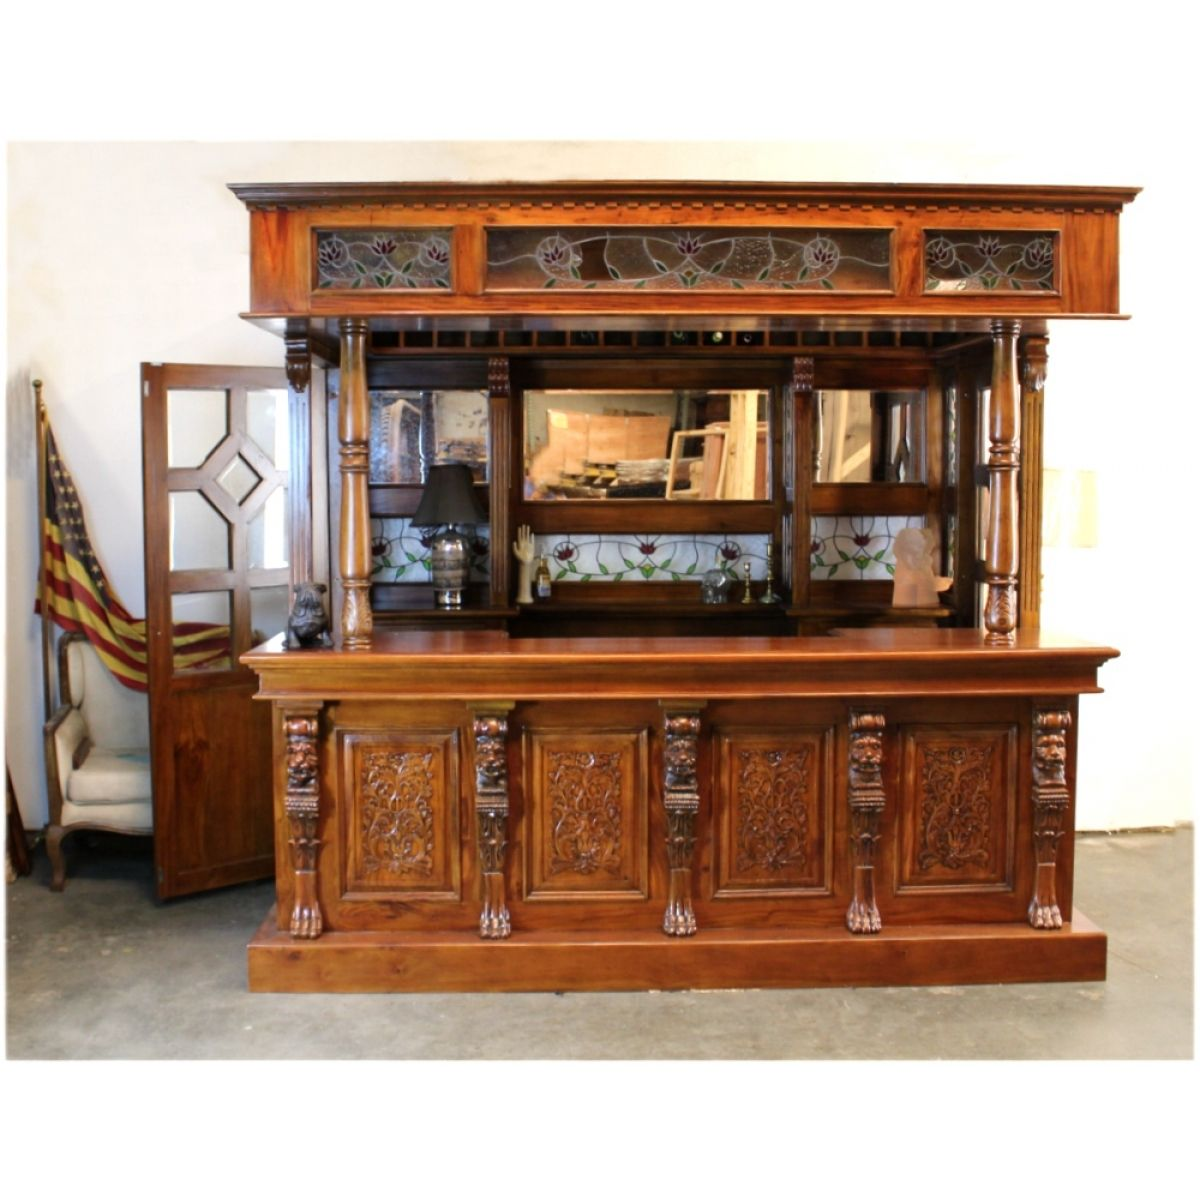 Tiffany glass canopy bar tavern pub furniture with wine racks lion crest antique full size - Bar canopy designs ...